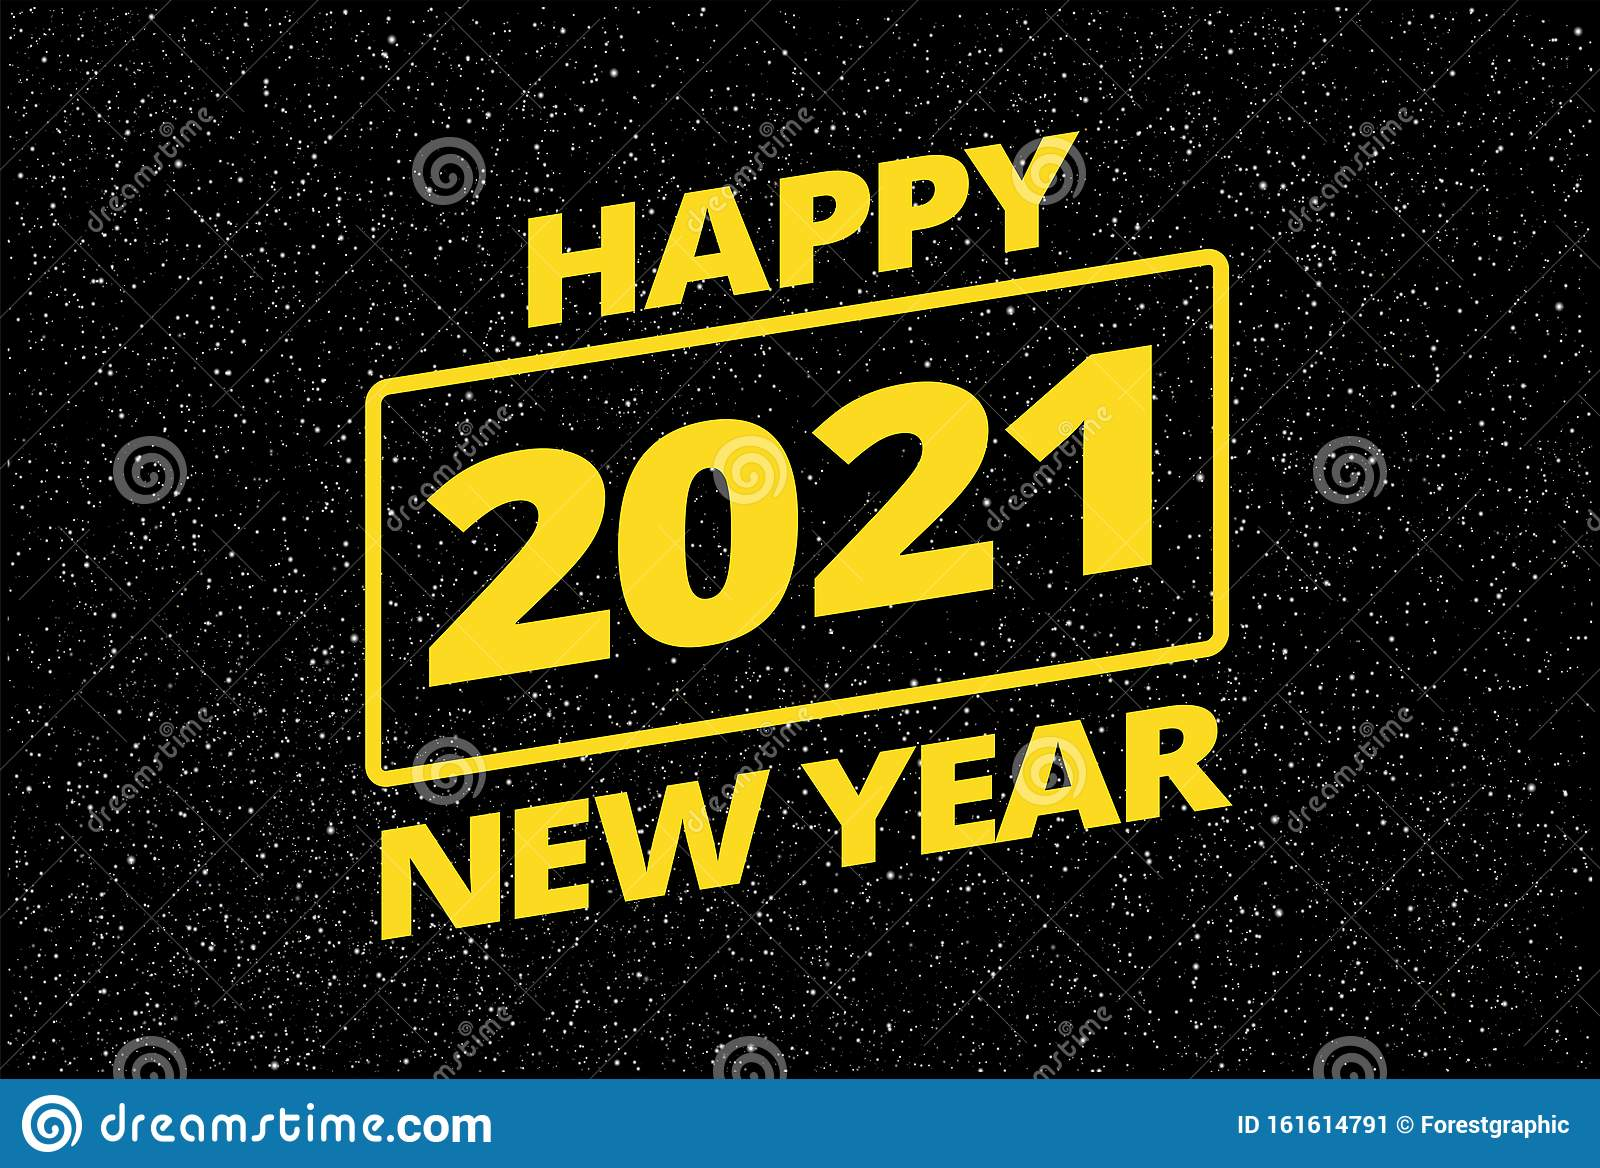 Happy New Year Star Wars Stock Illustrations 23 Happy New Year Star Wars Stock Illustrations Vectors Clipart Dreamstime